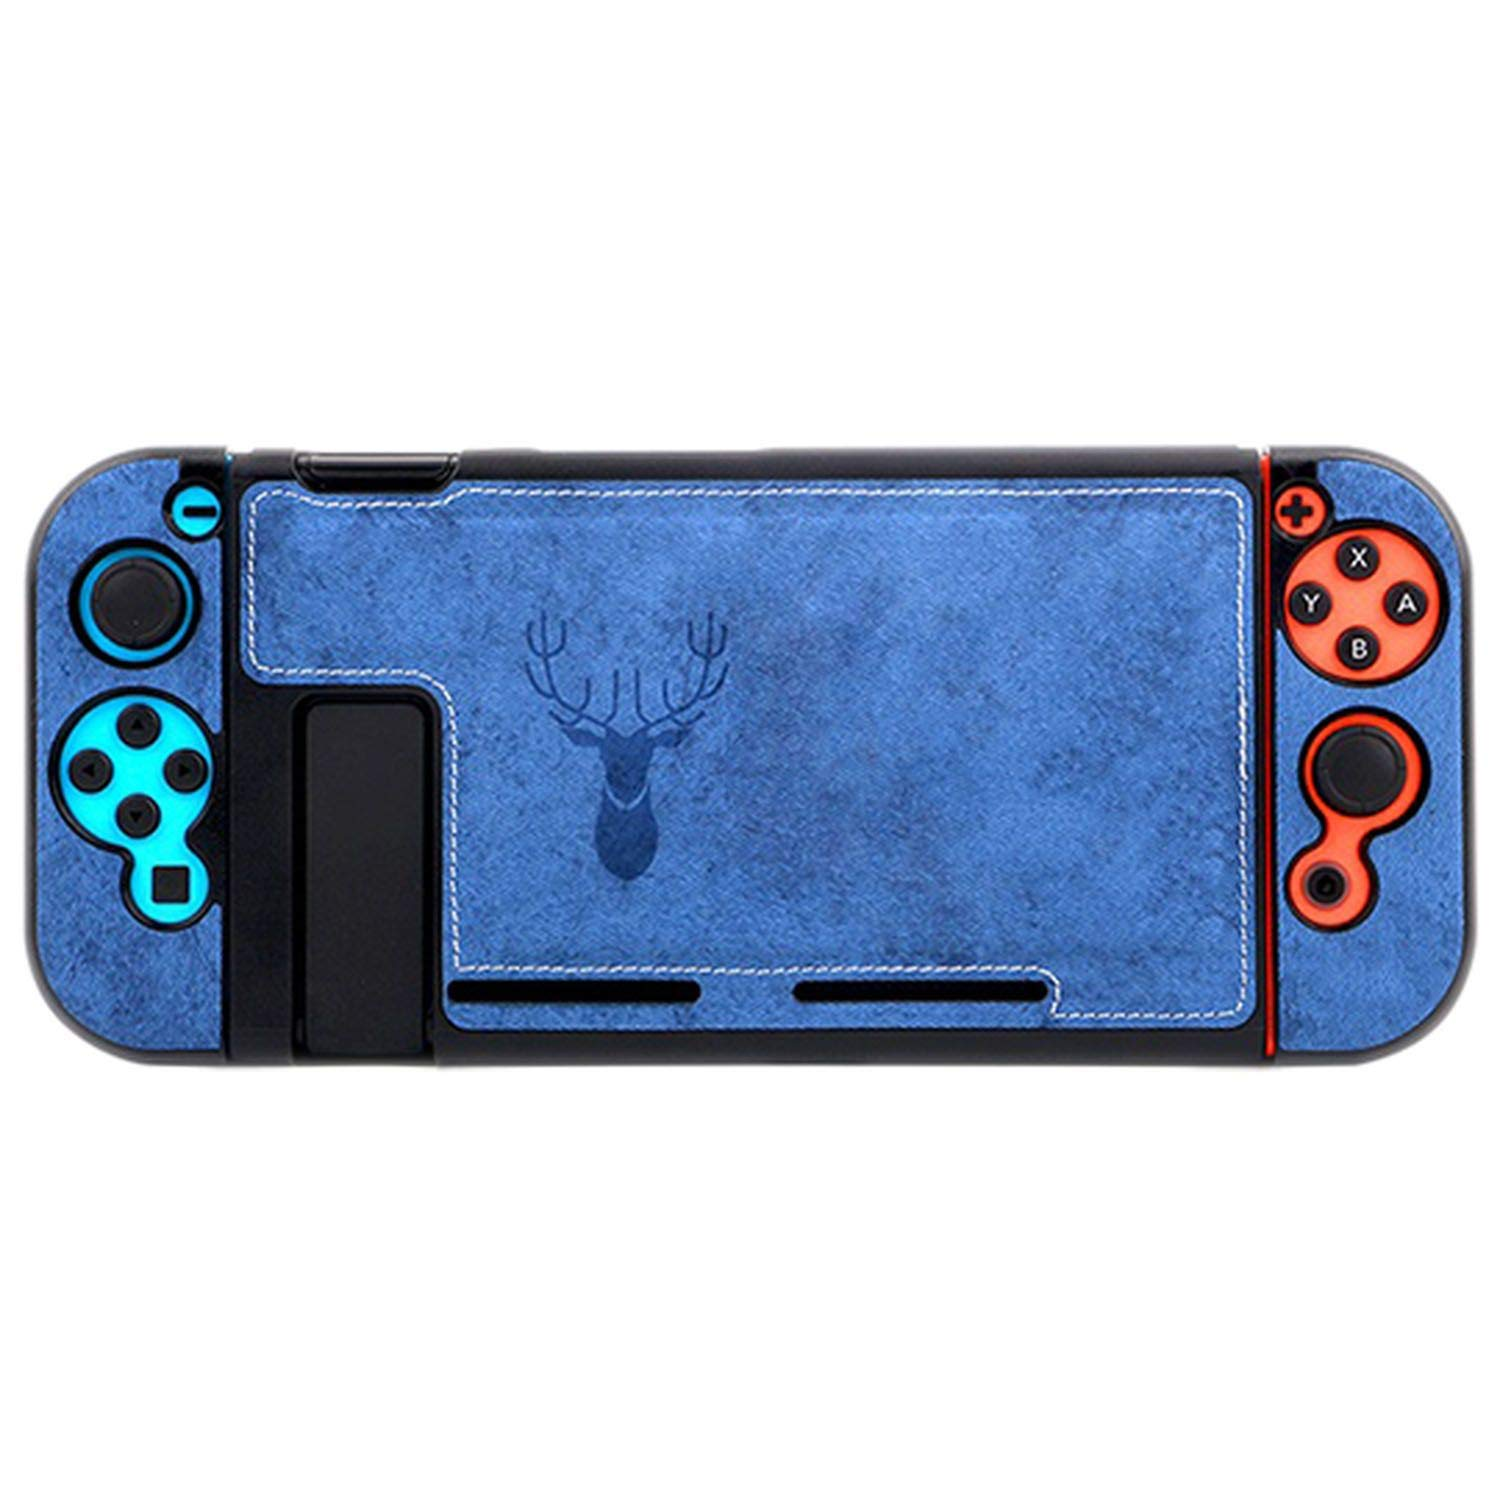 Cloth Case for Nintendo Switch Protective Cover Case for Nintendo Switch Console NS Accessories Bag for Nintendo Switch Case,Blue